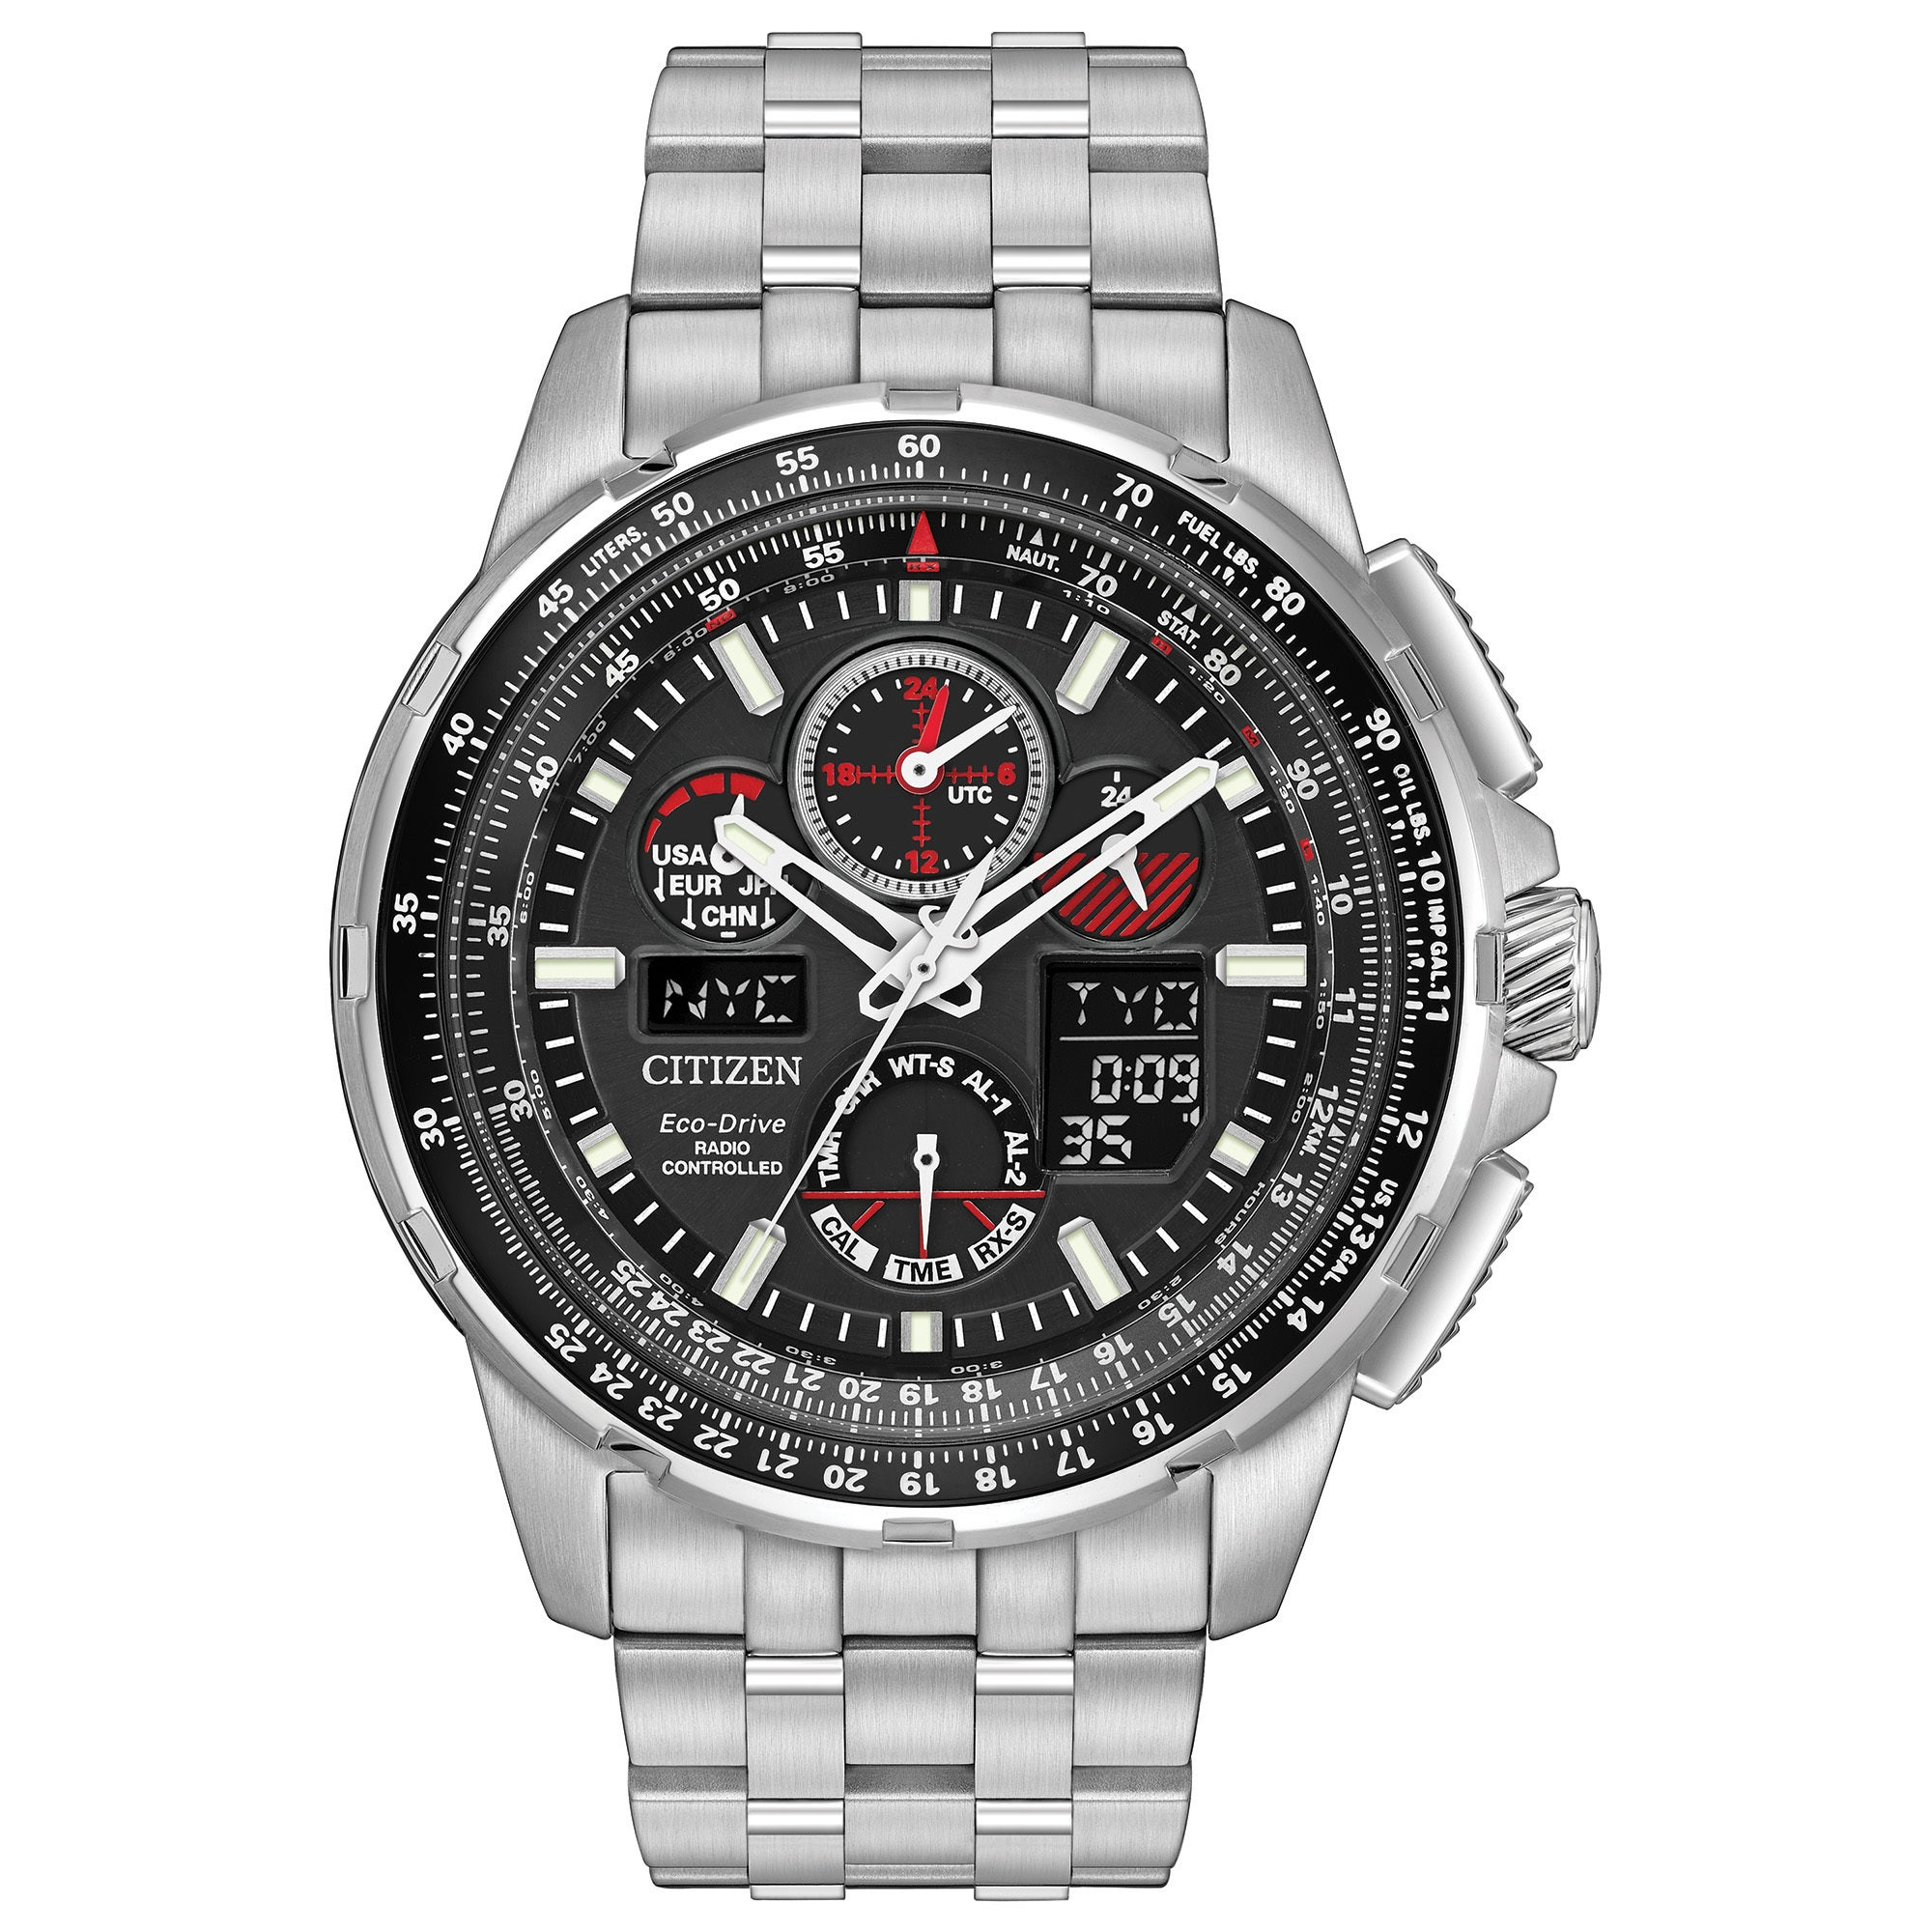 Citizen Men's JY8050-51E Eco-Drive Skyhawk Atomic Timekee...